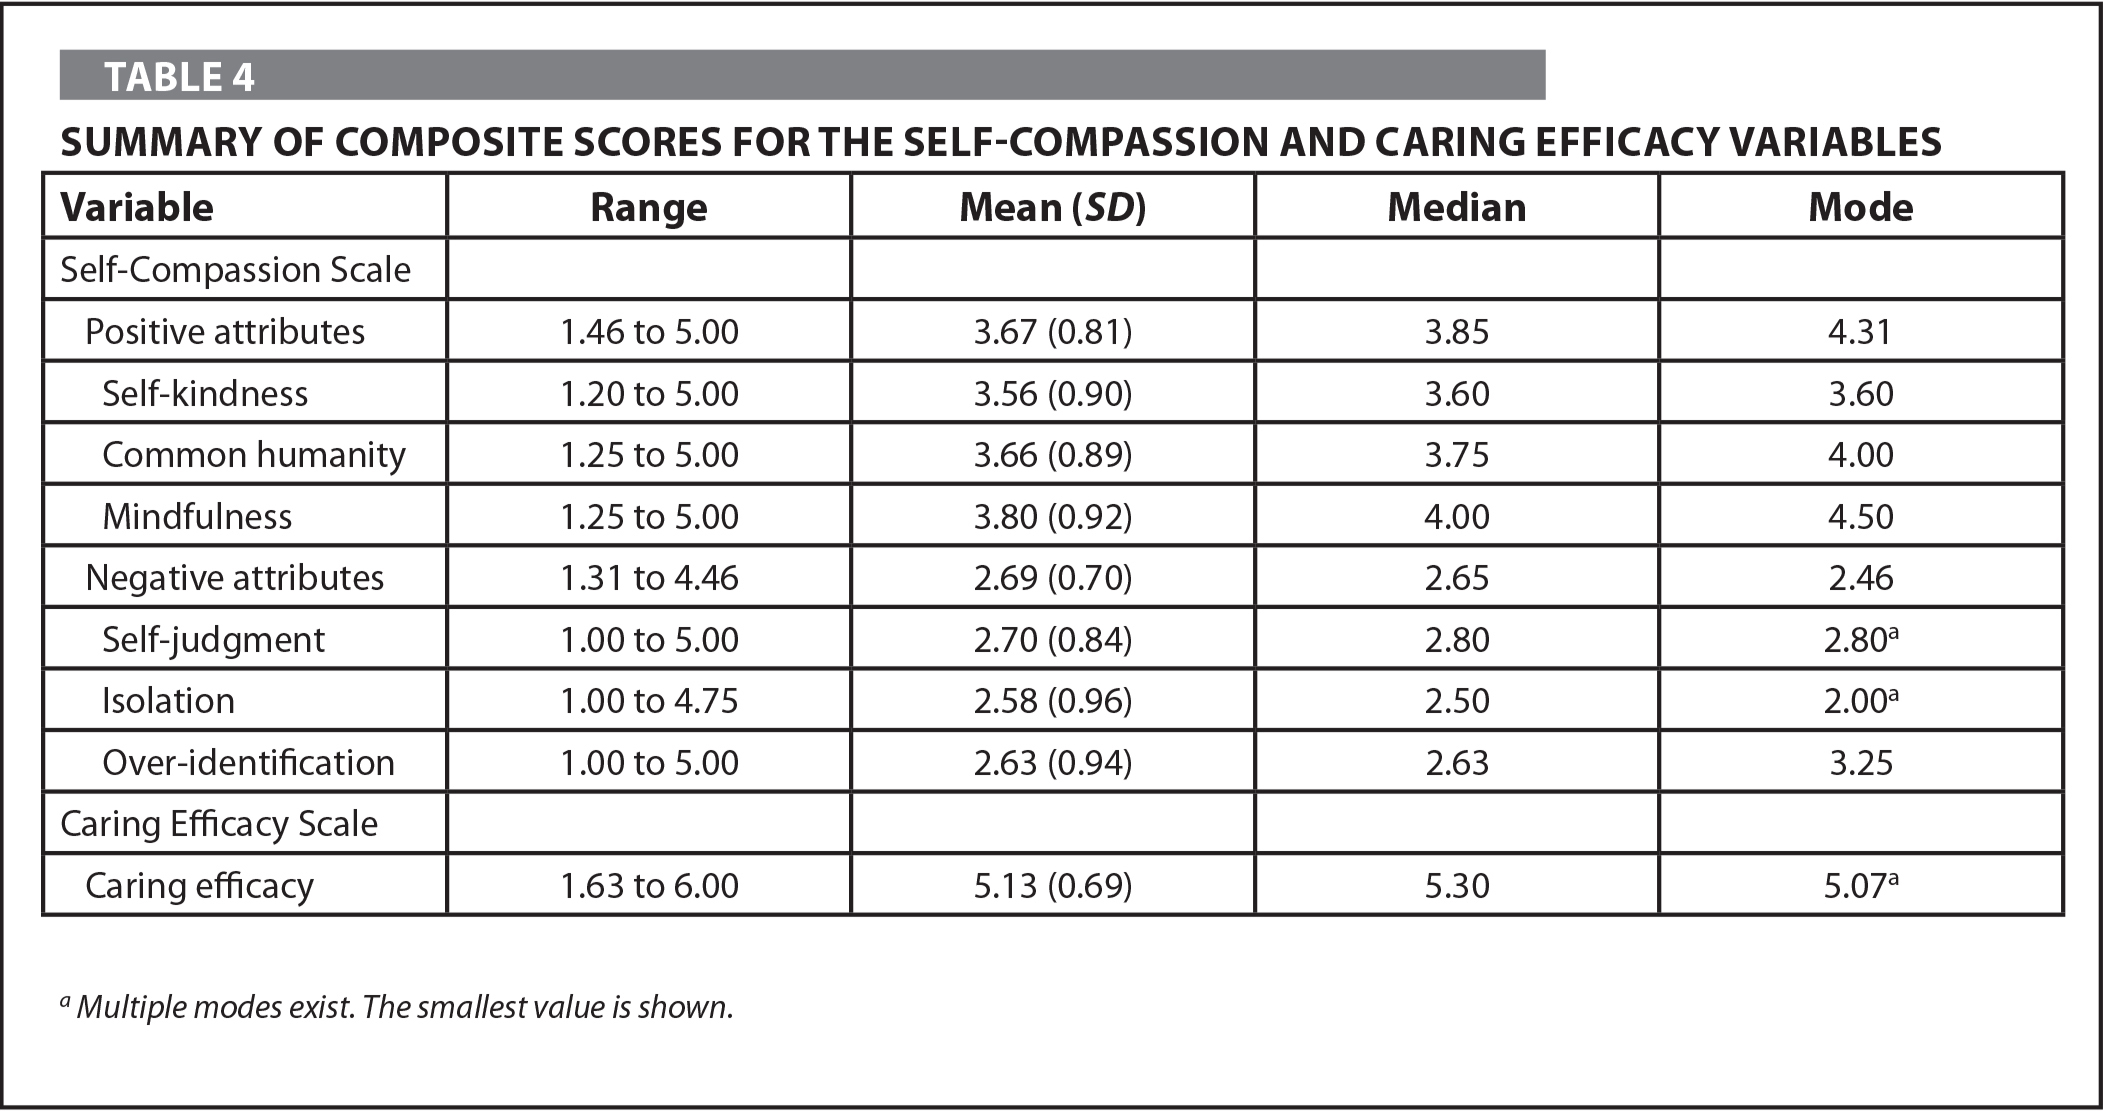 Summary of Composite Scores for the Self-Compassion and Caring Efficacy Variables